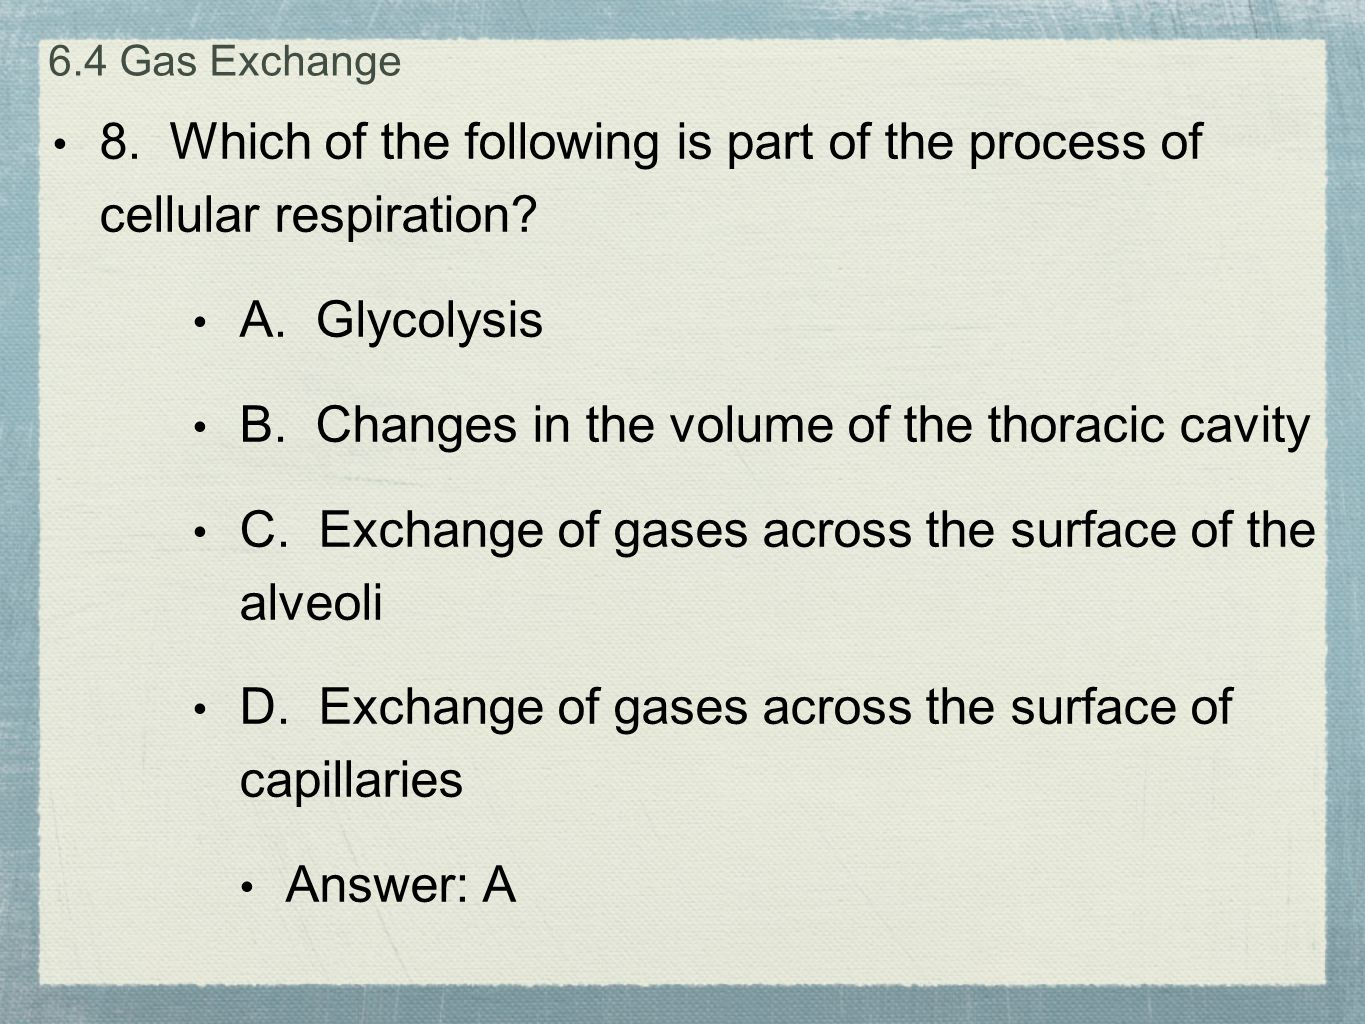 B. Changes in the volume of the thoracic cavity